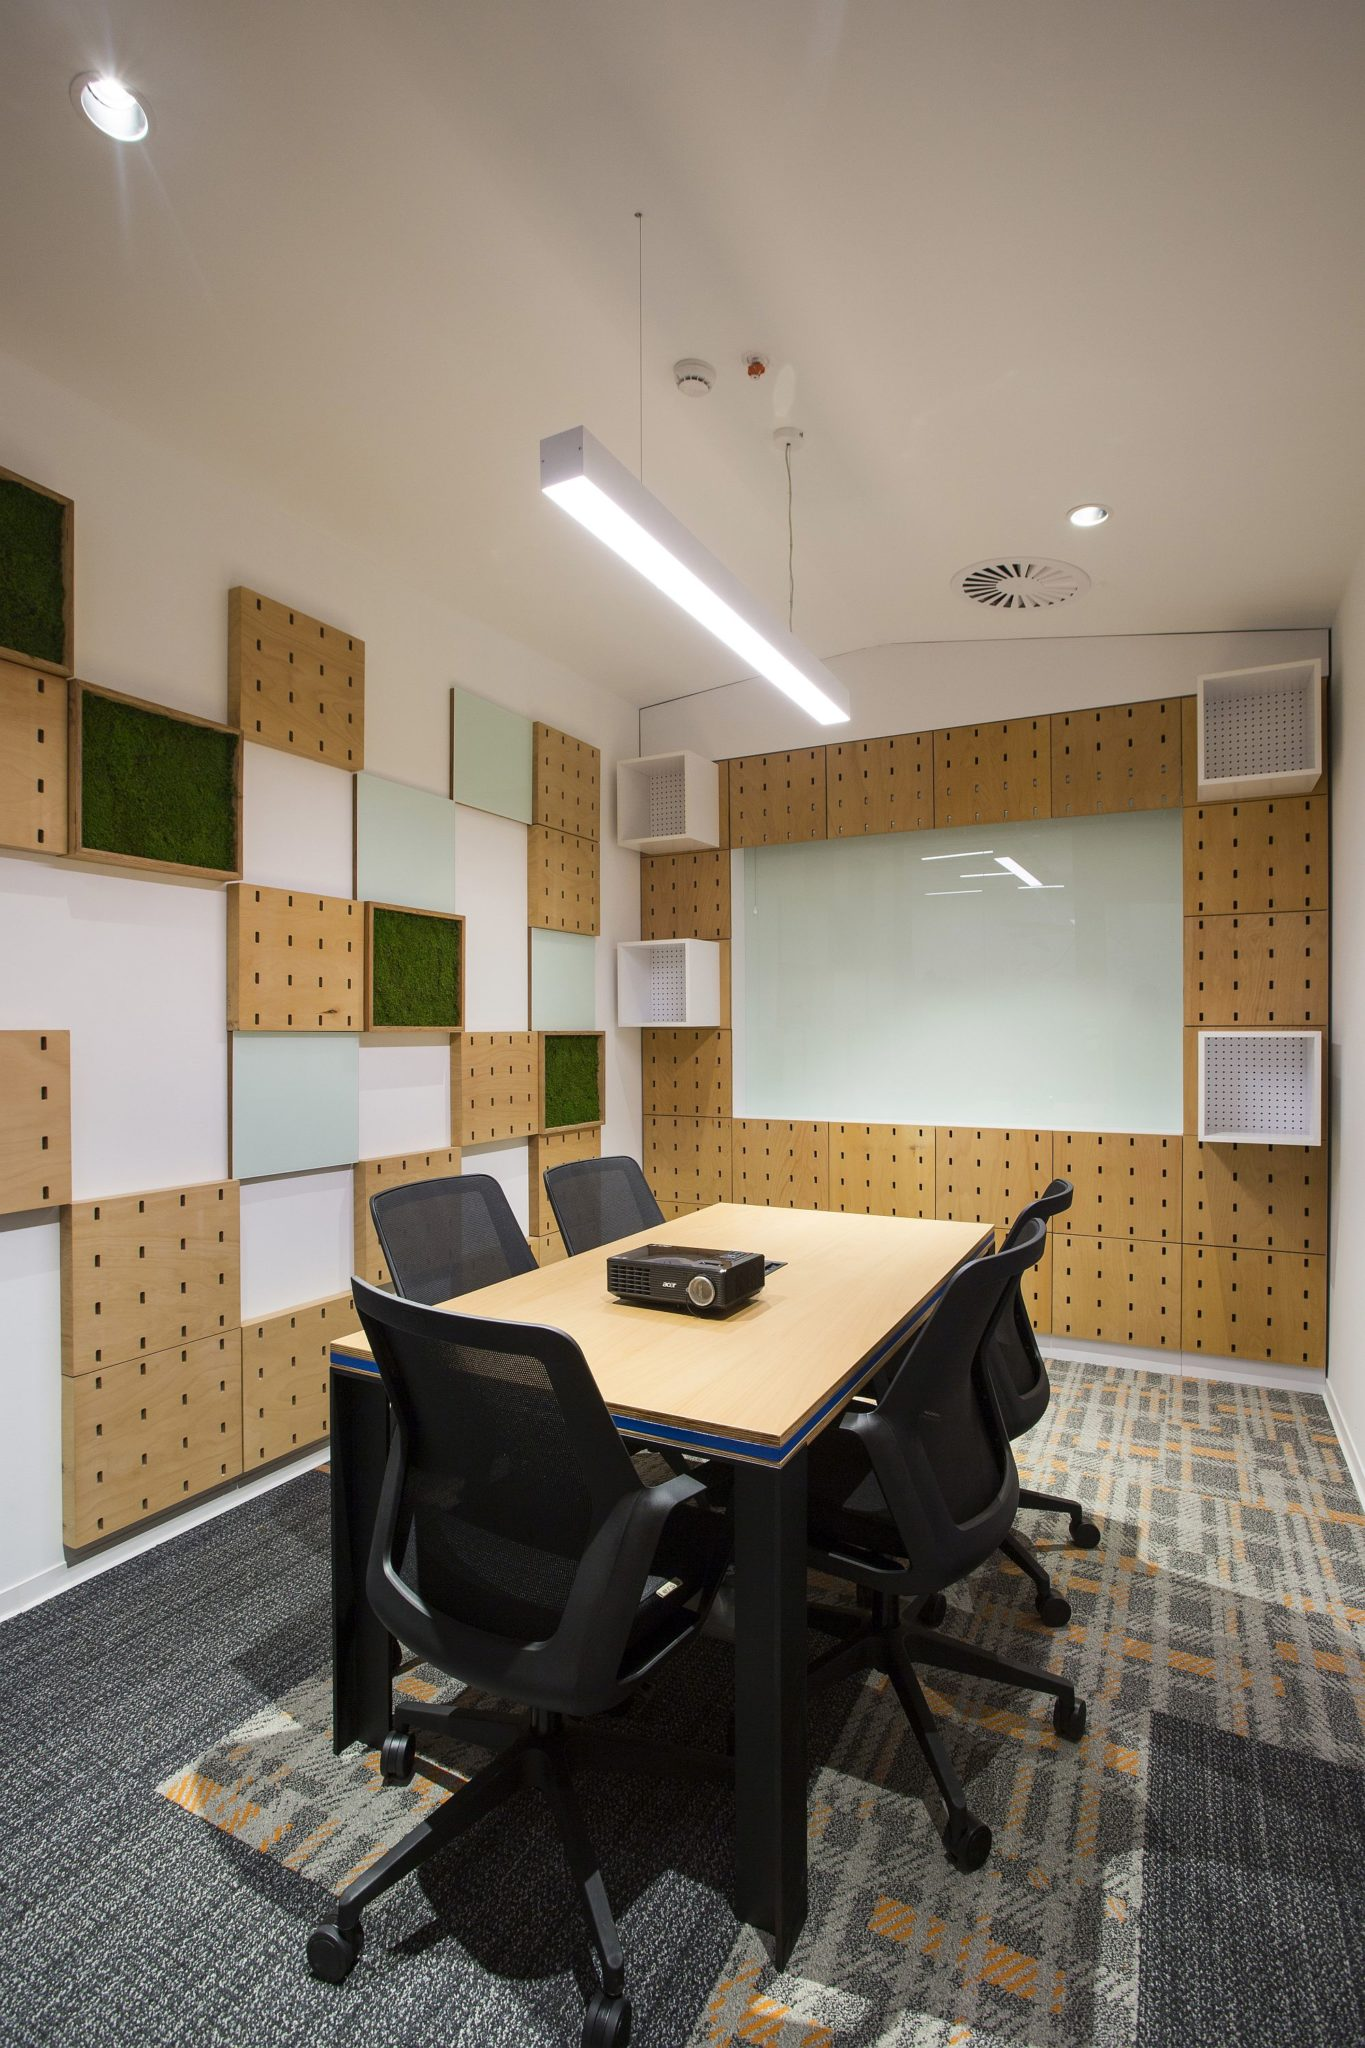 Adaptable and modern conference room in the office